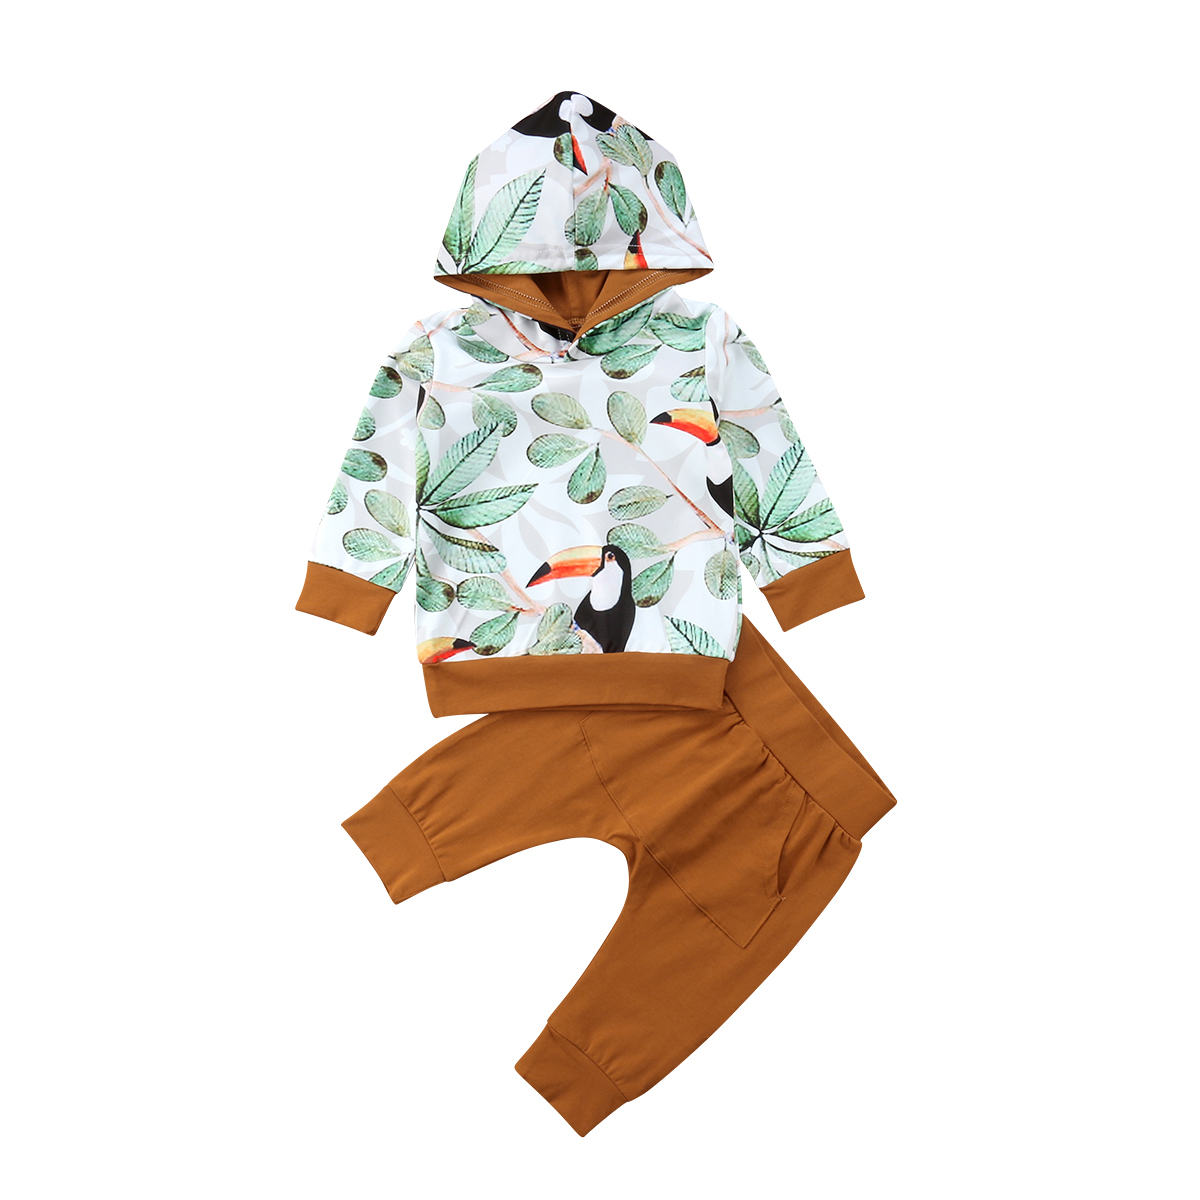 2pcs Baby Clothes Infant Toddler Babies Boys Hooded Tops Harem Pants Outfits Hoodies Clothing Set 0-24M